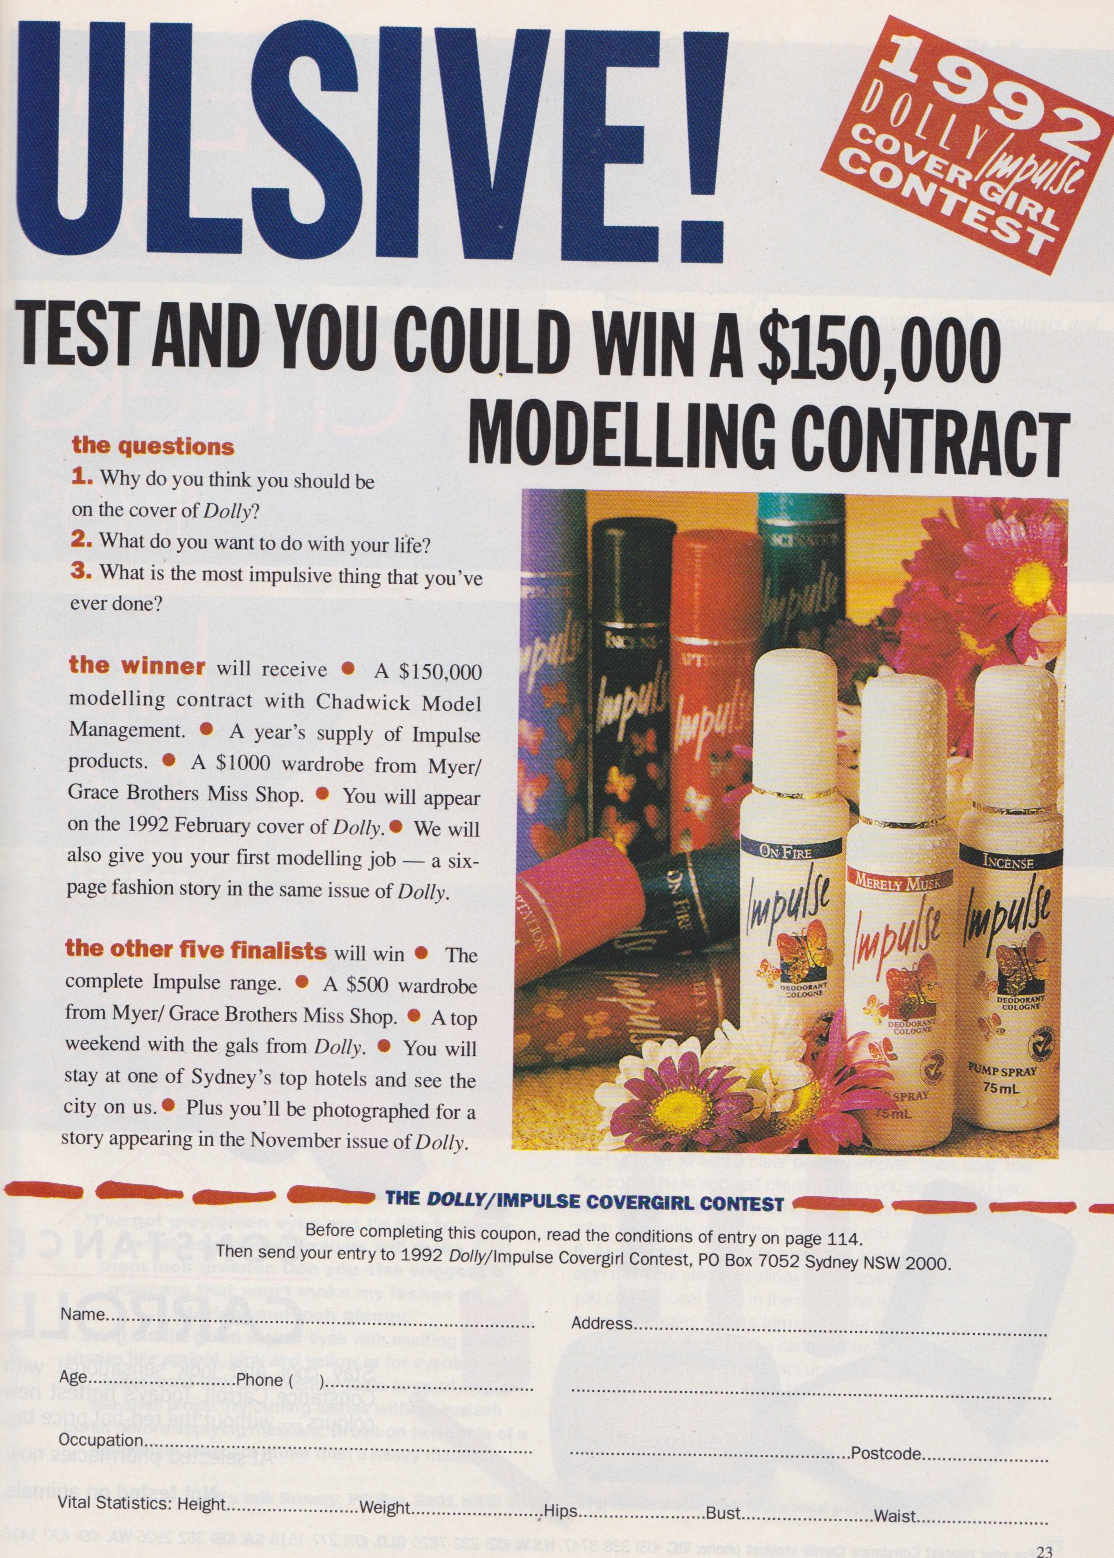 Dolly Covergirl Competition | 1991 Entry Form 02.jpeg